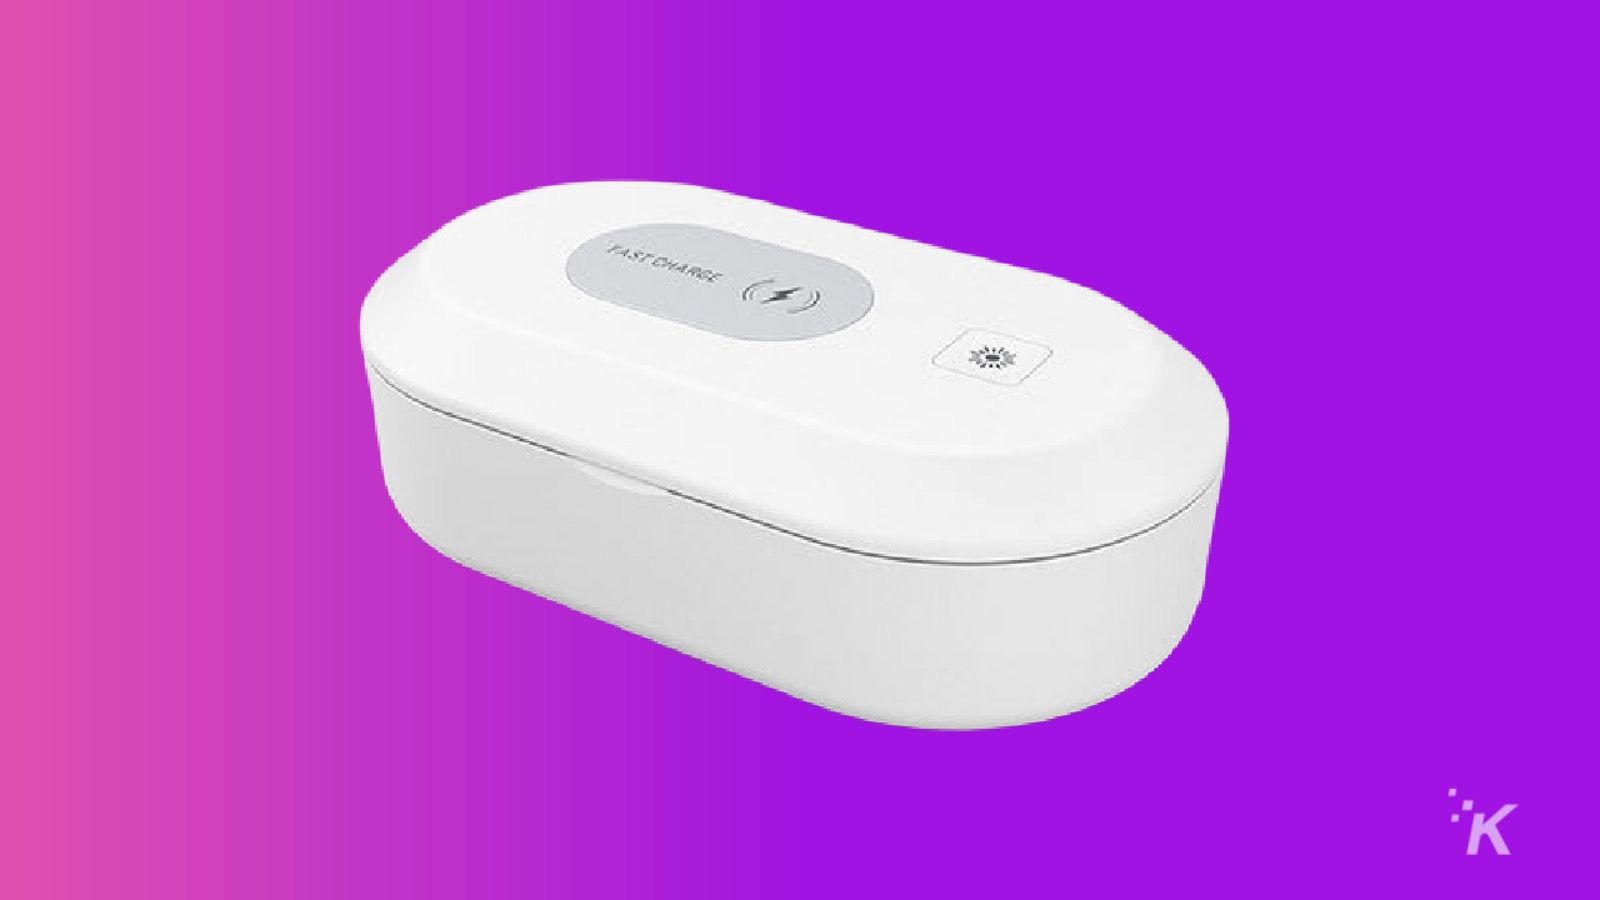 3-in-1 UV Sterilizer with Wireless Charger